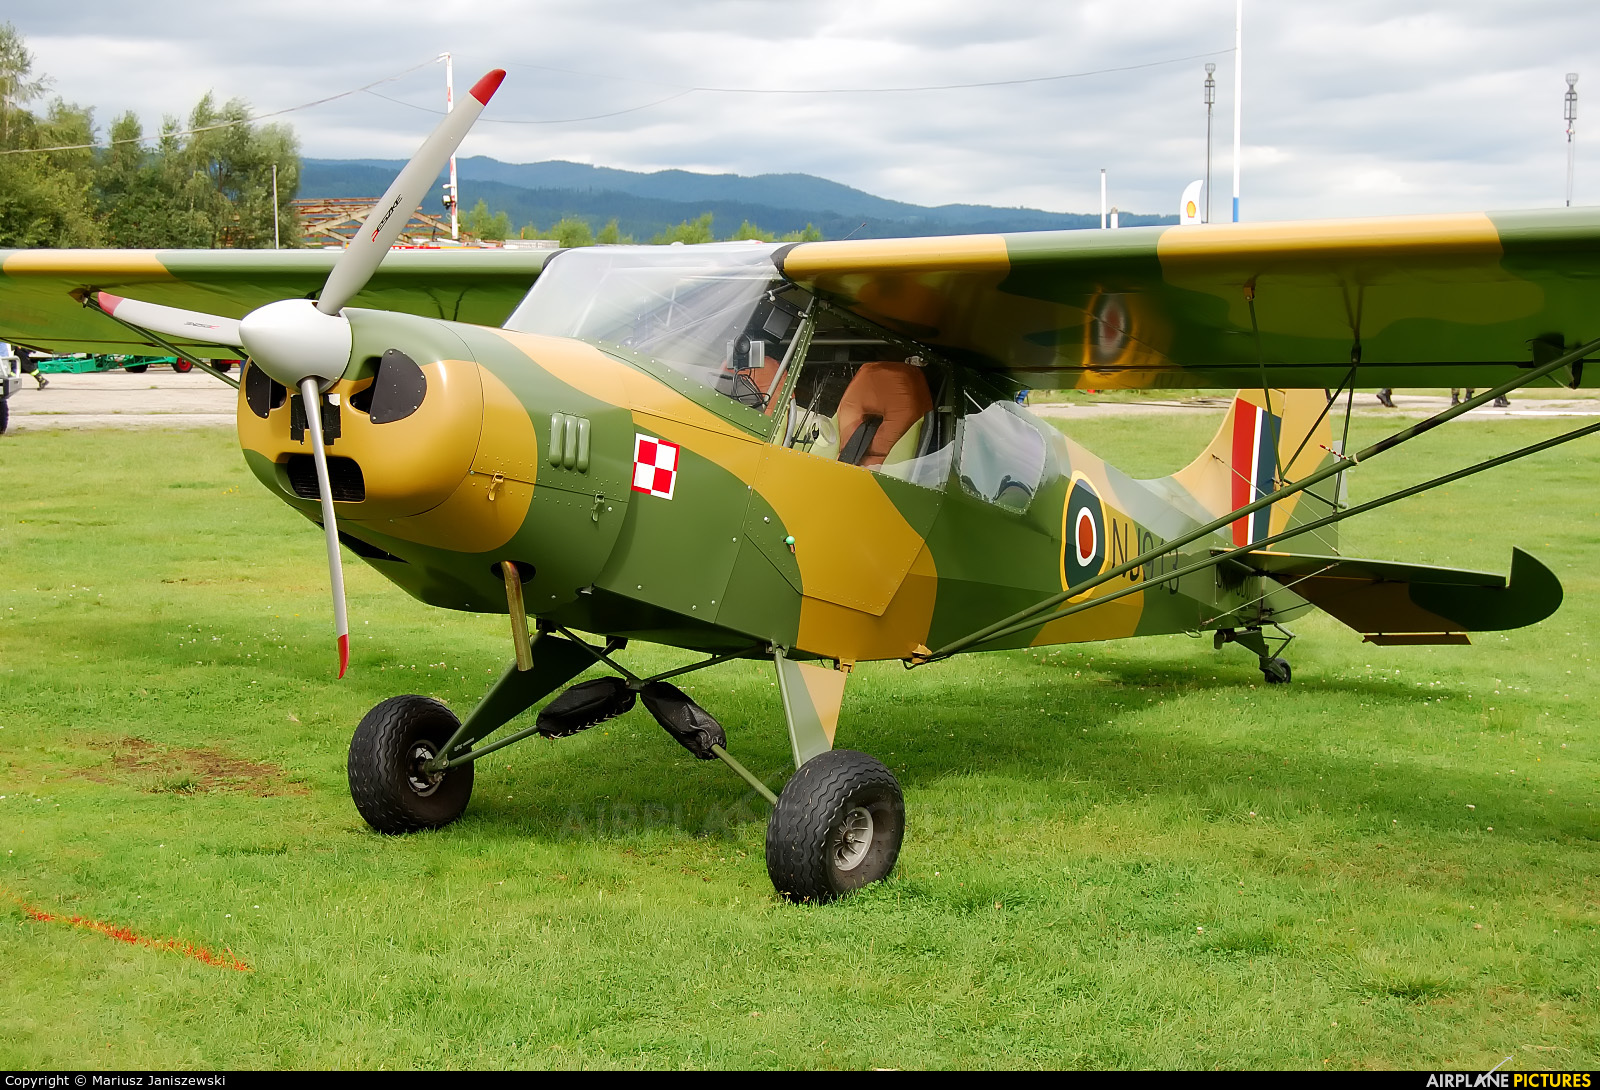 Private OK-PUD01 aircraft at Nowy Targ